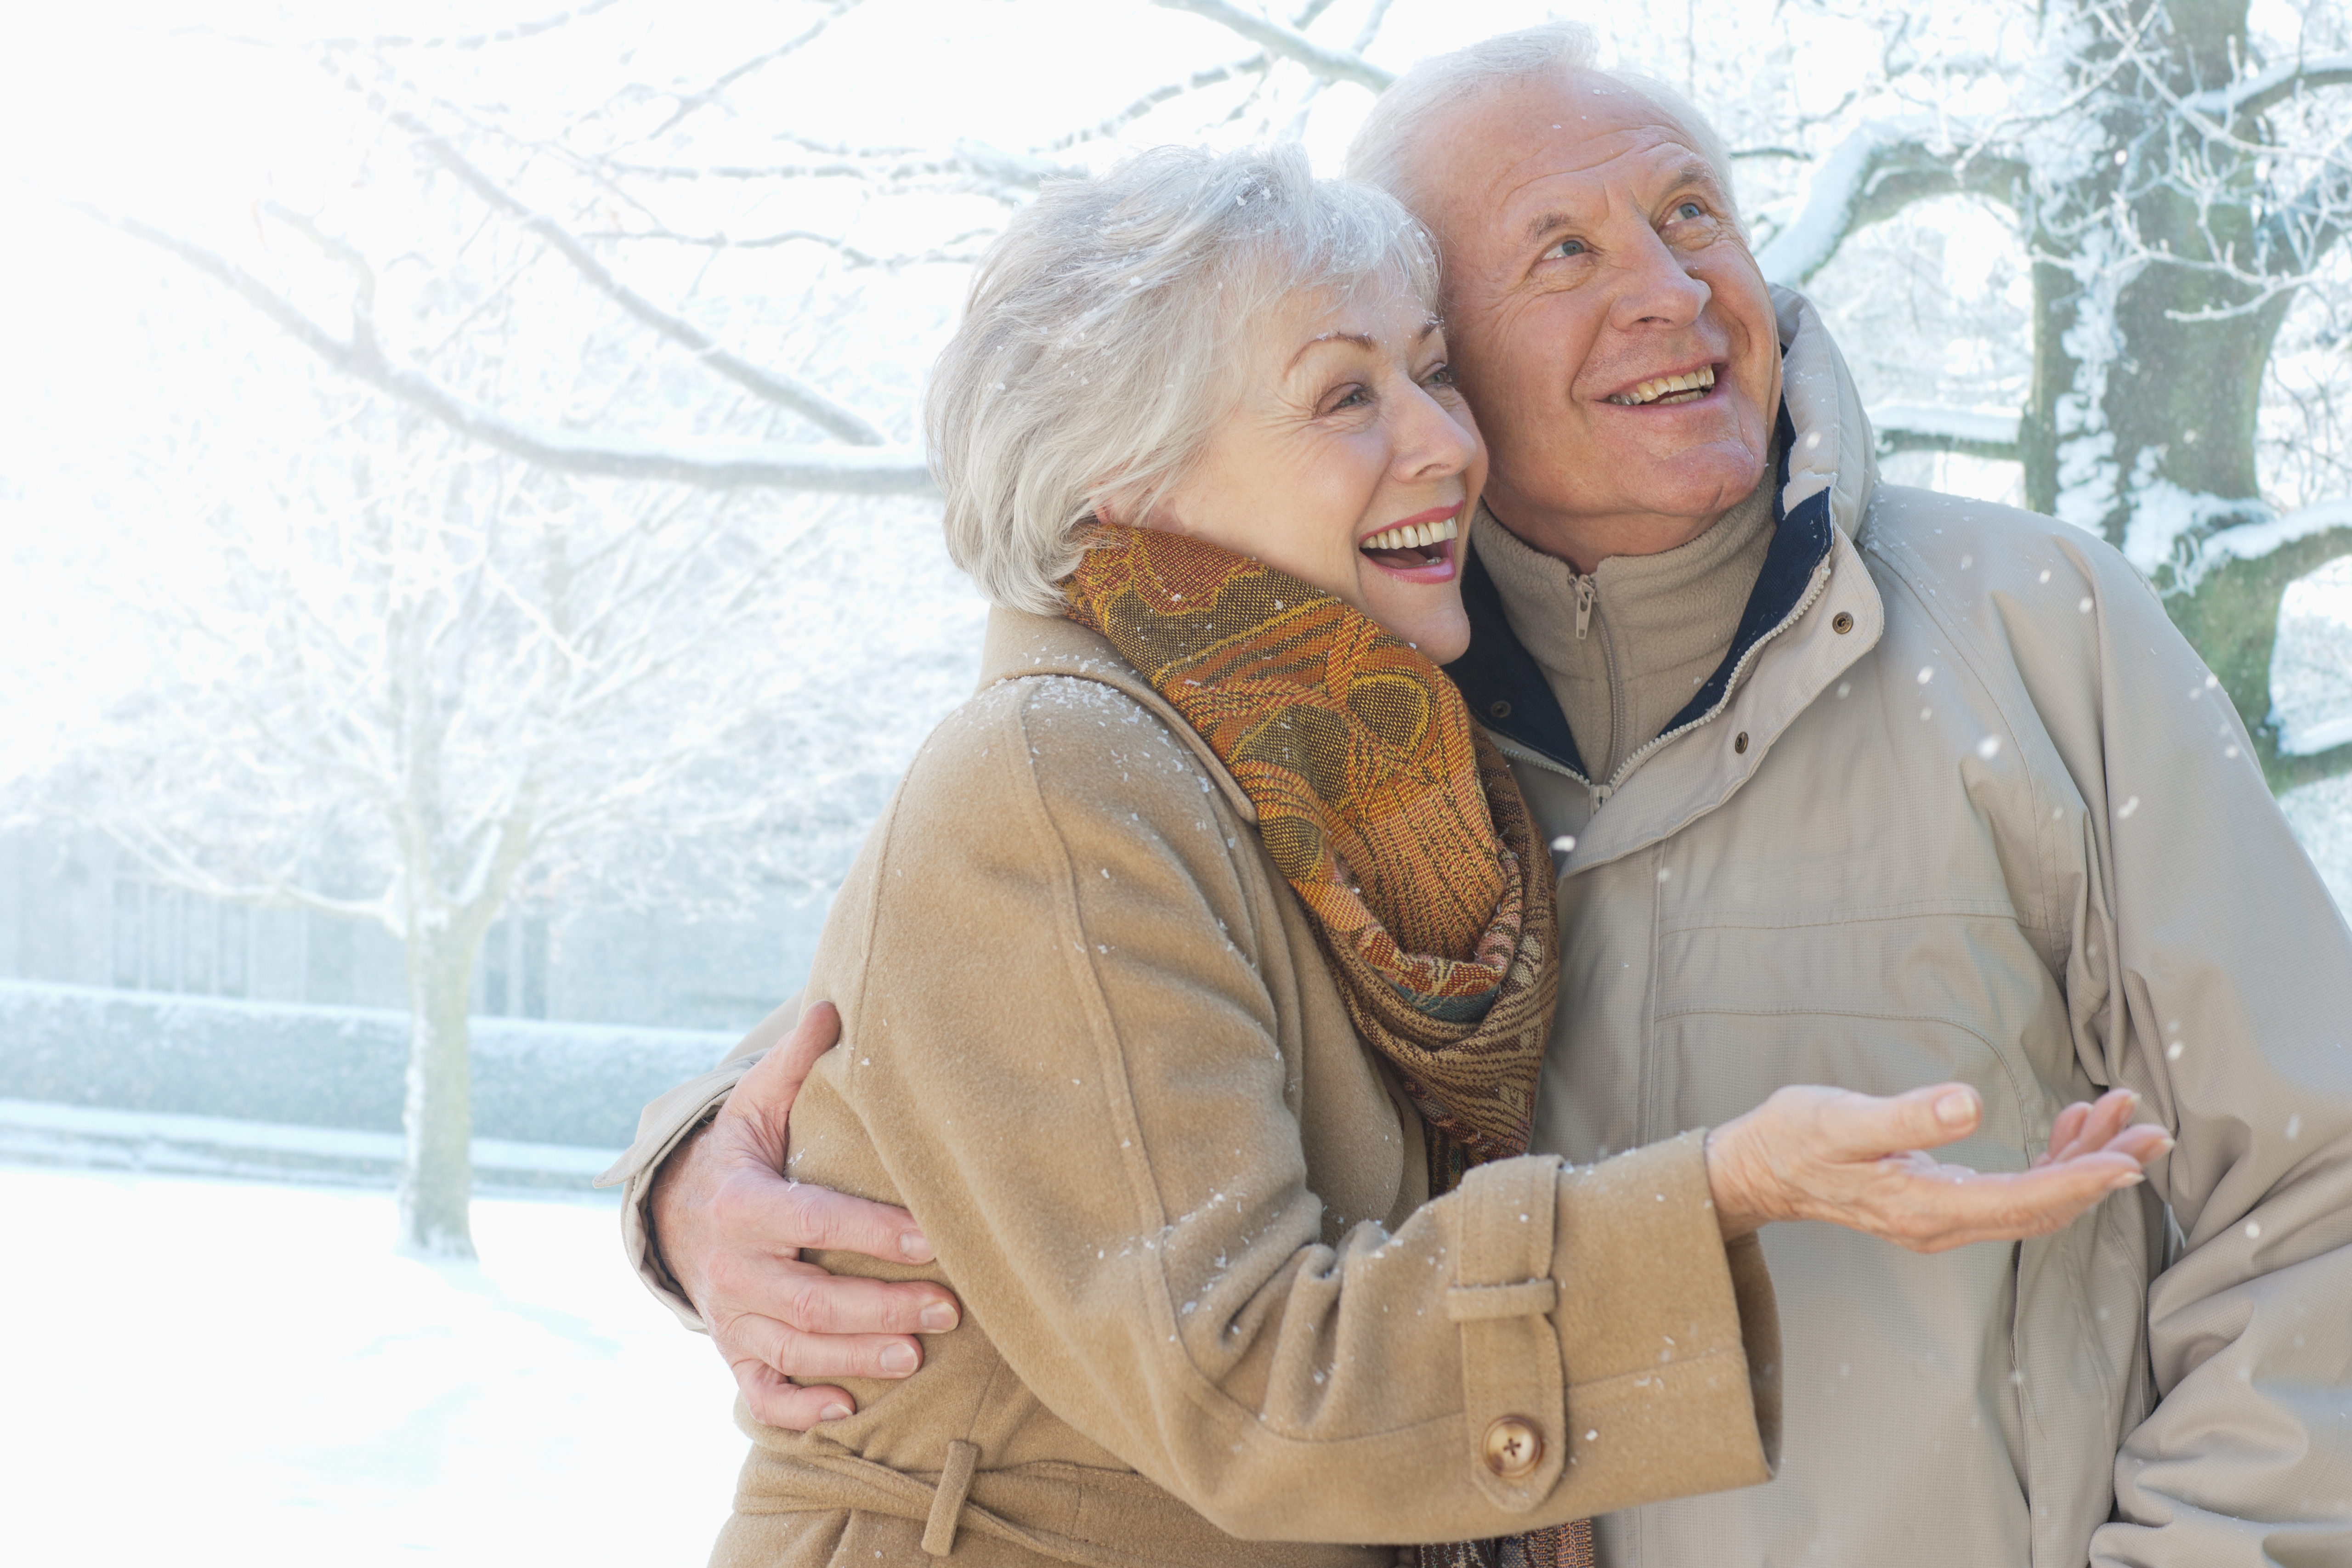 An elderly couple is shown smiling in the snow.